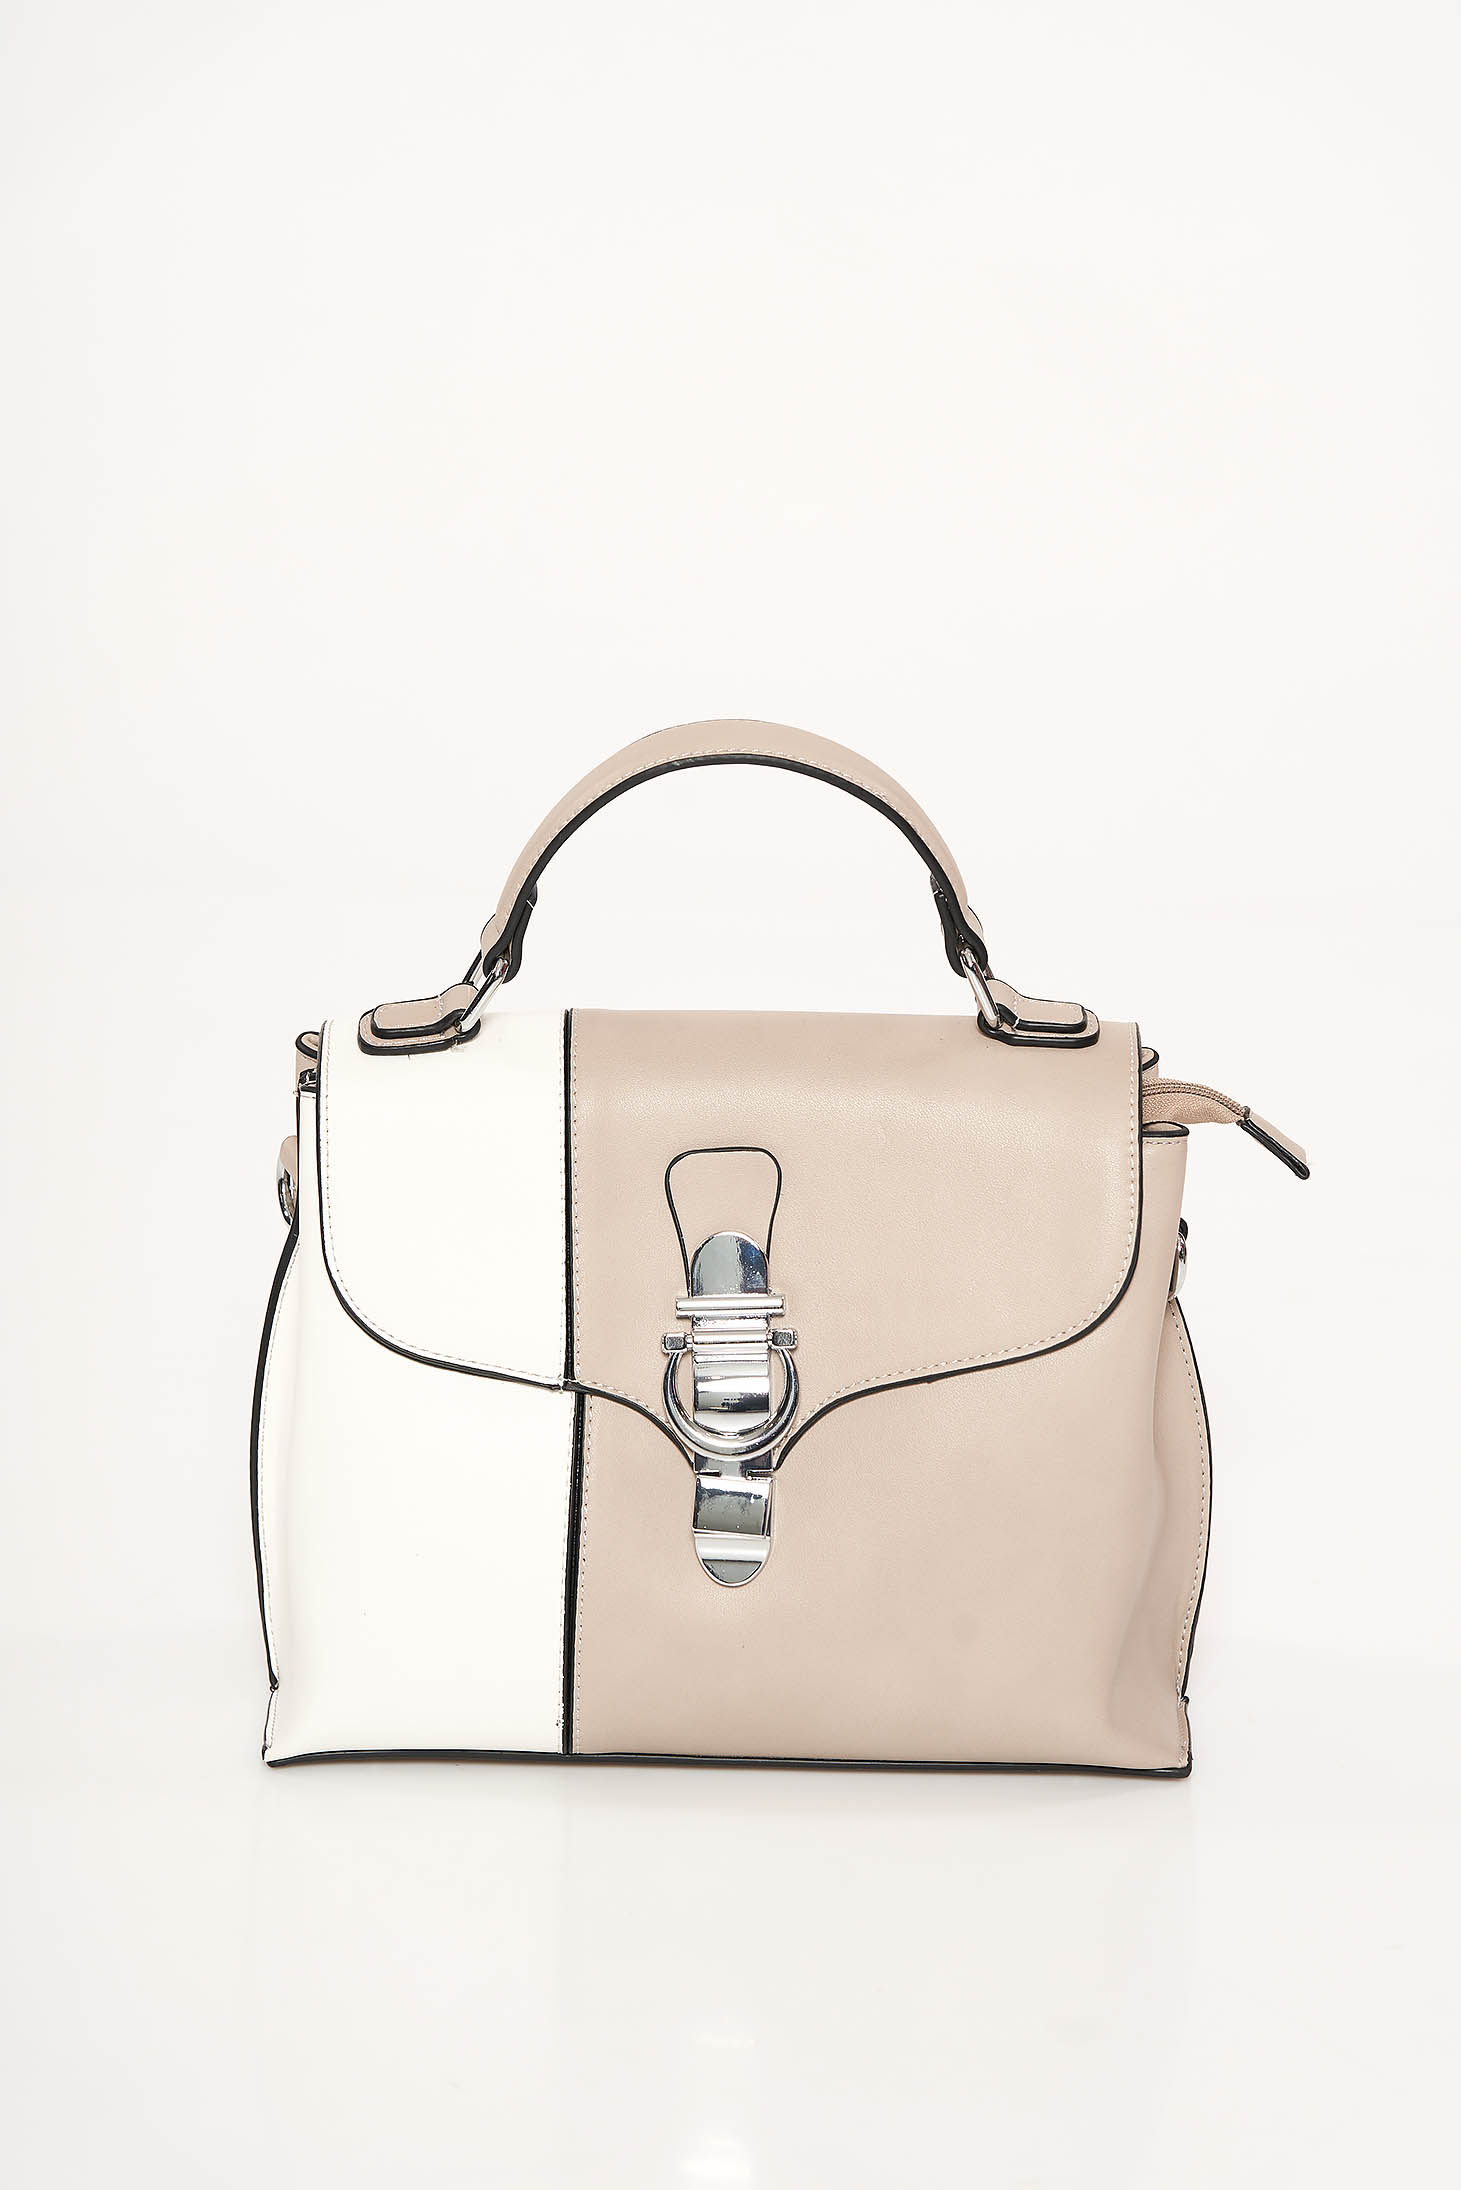 Cream office bag from ecological leather medium handles